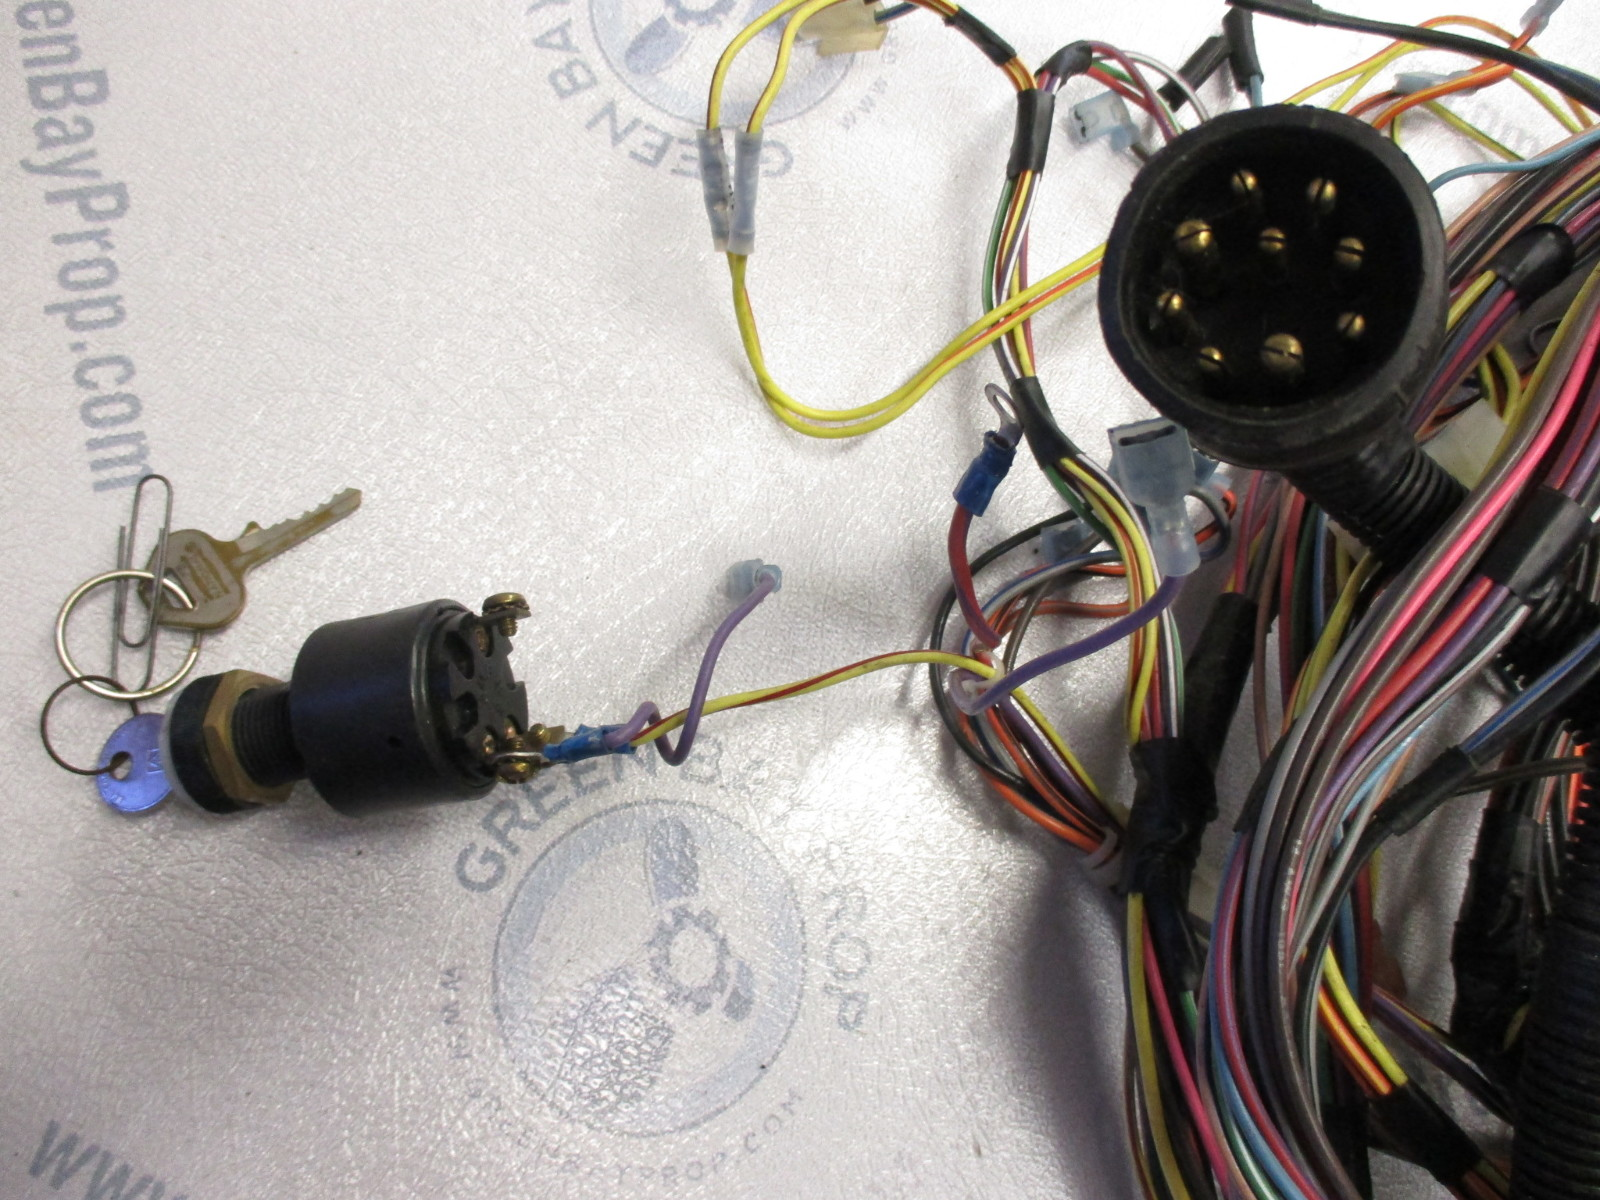 Sx Px332m Technics Pedal Wiring Ktm 520 Diagram Volvo Penta 30 4 Cyl Engine To Dash Wire Harness 16 Ft